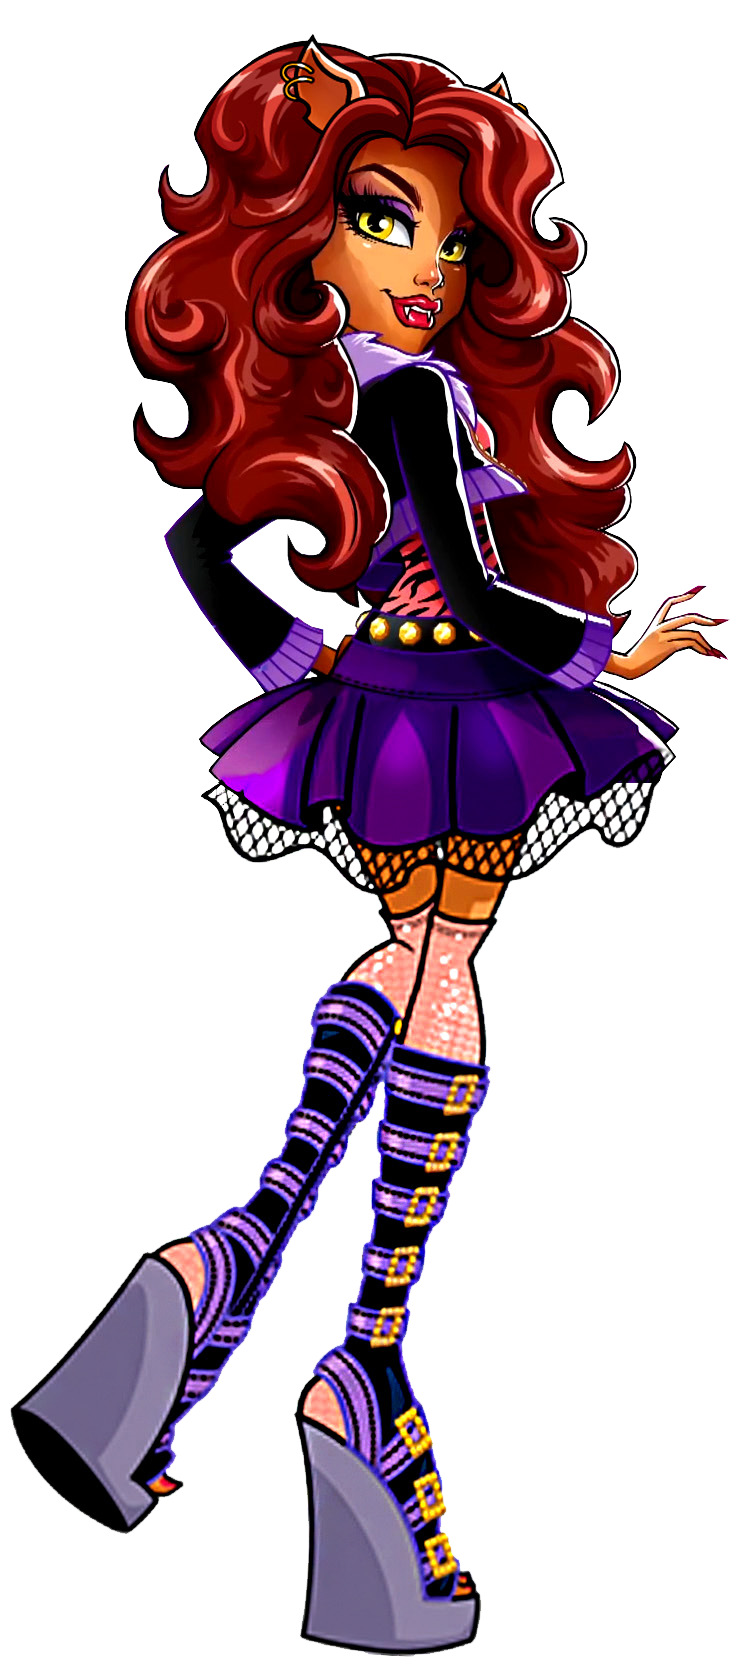 Clawdeen wolf basic new profile art monster high art - Clawdeen wolf pyjama party ...